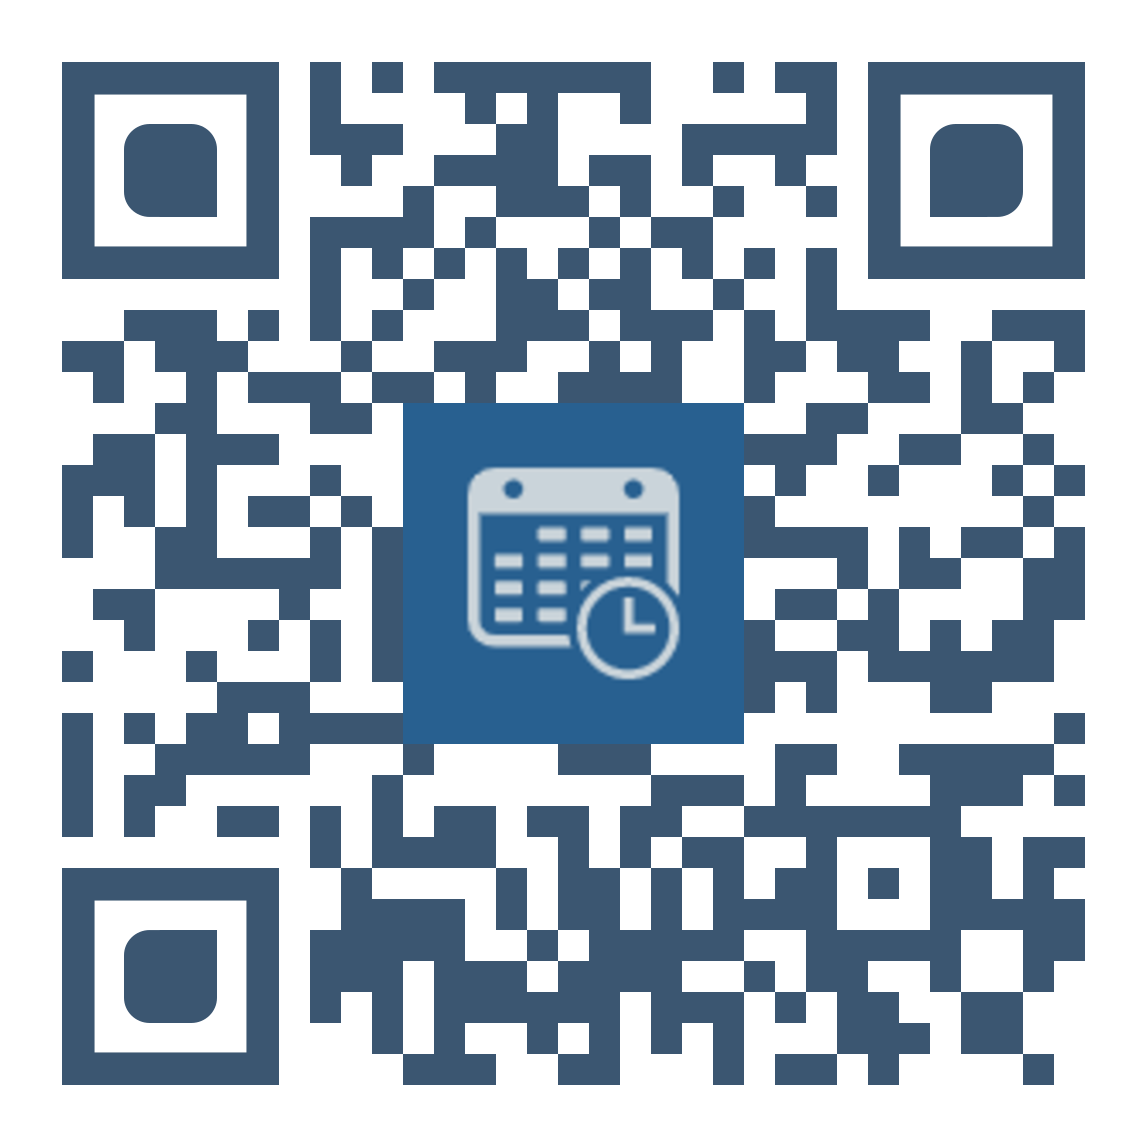 QR code to link to the book a librarian service